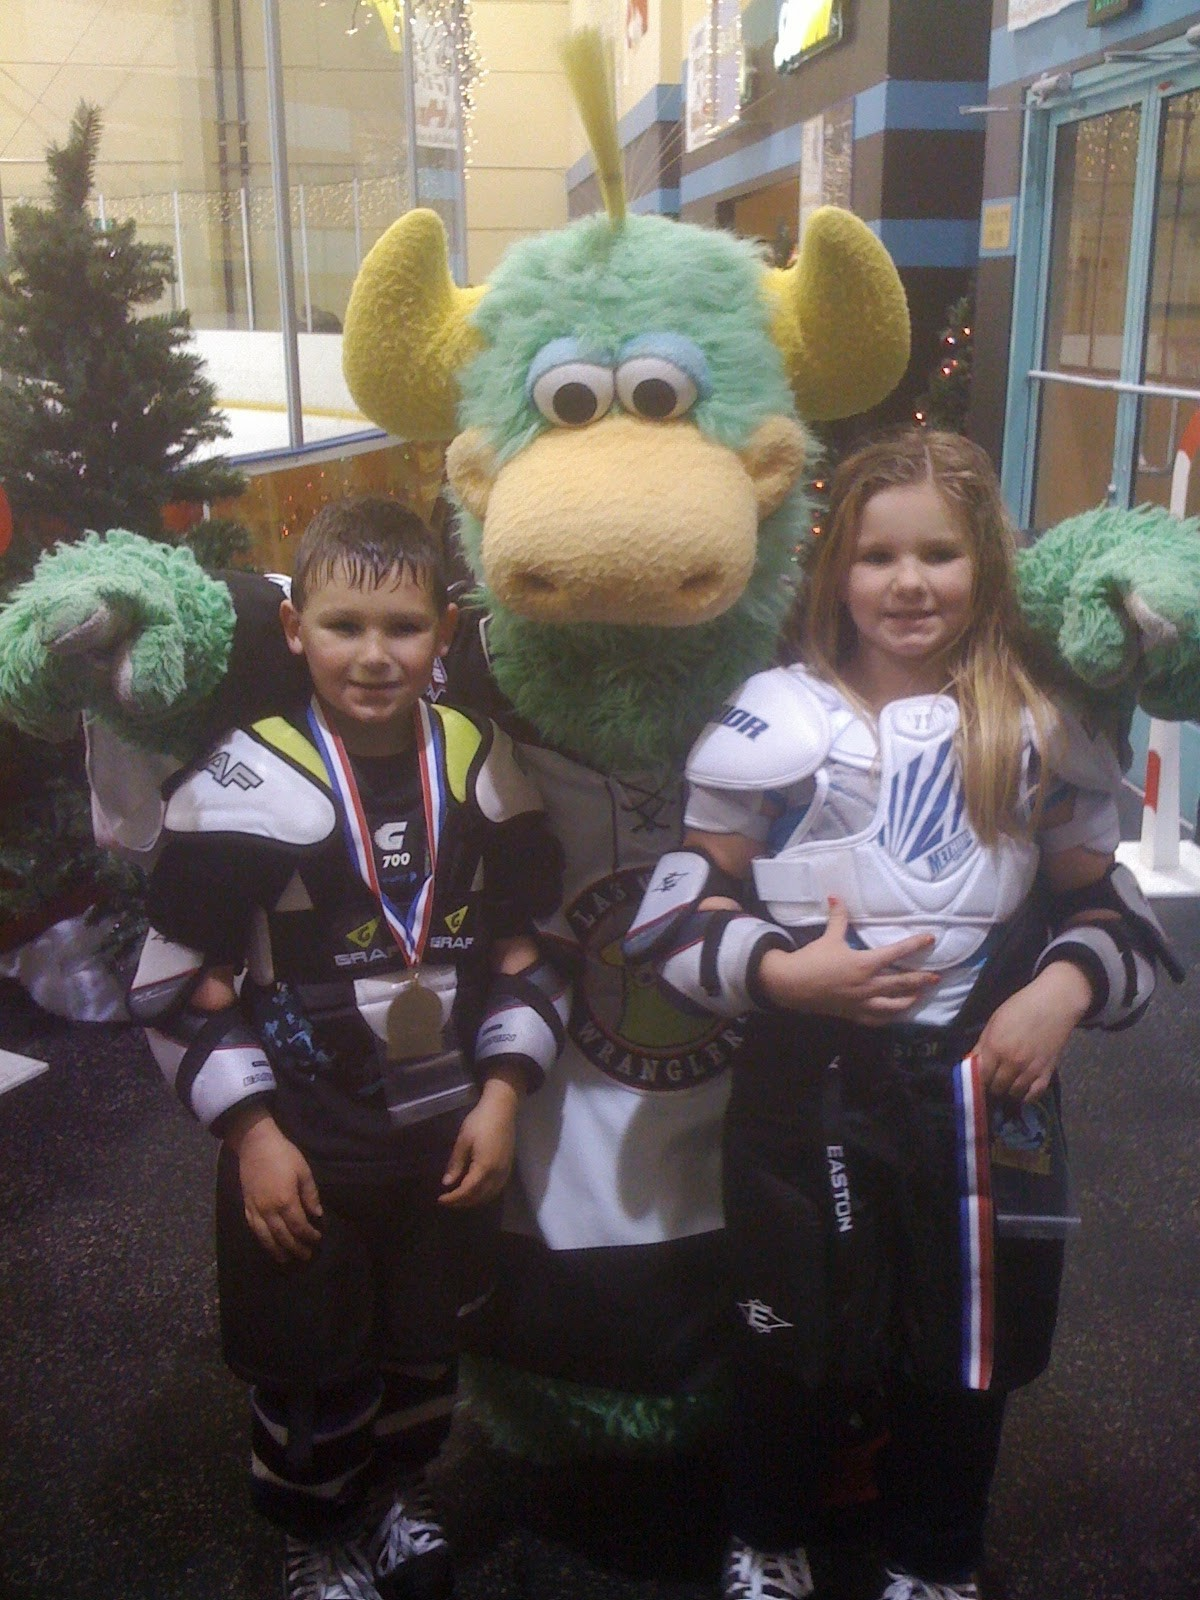 amanda and branden sorensen ice hockey with mascot